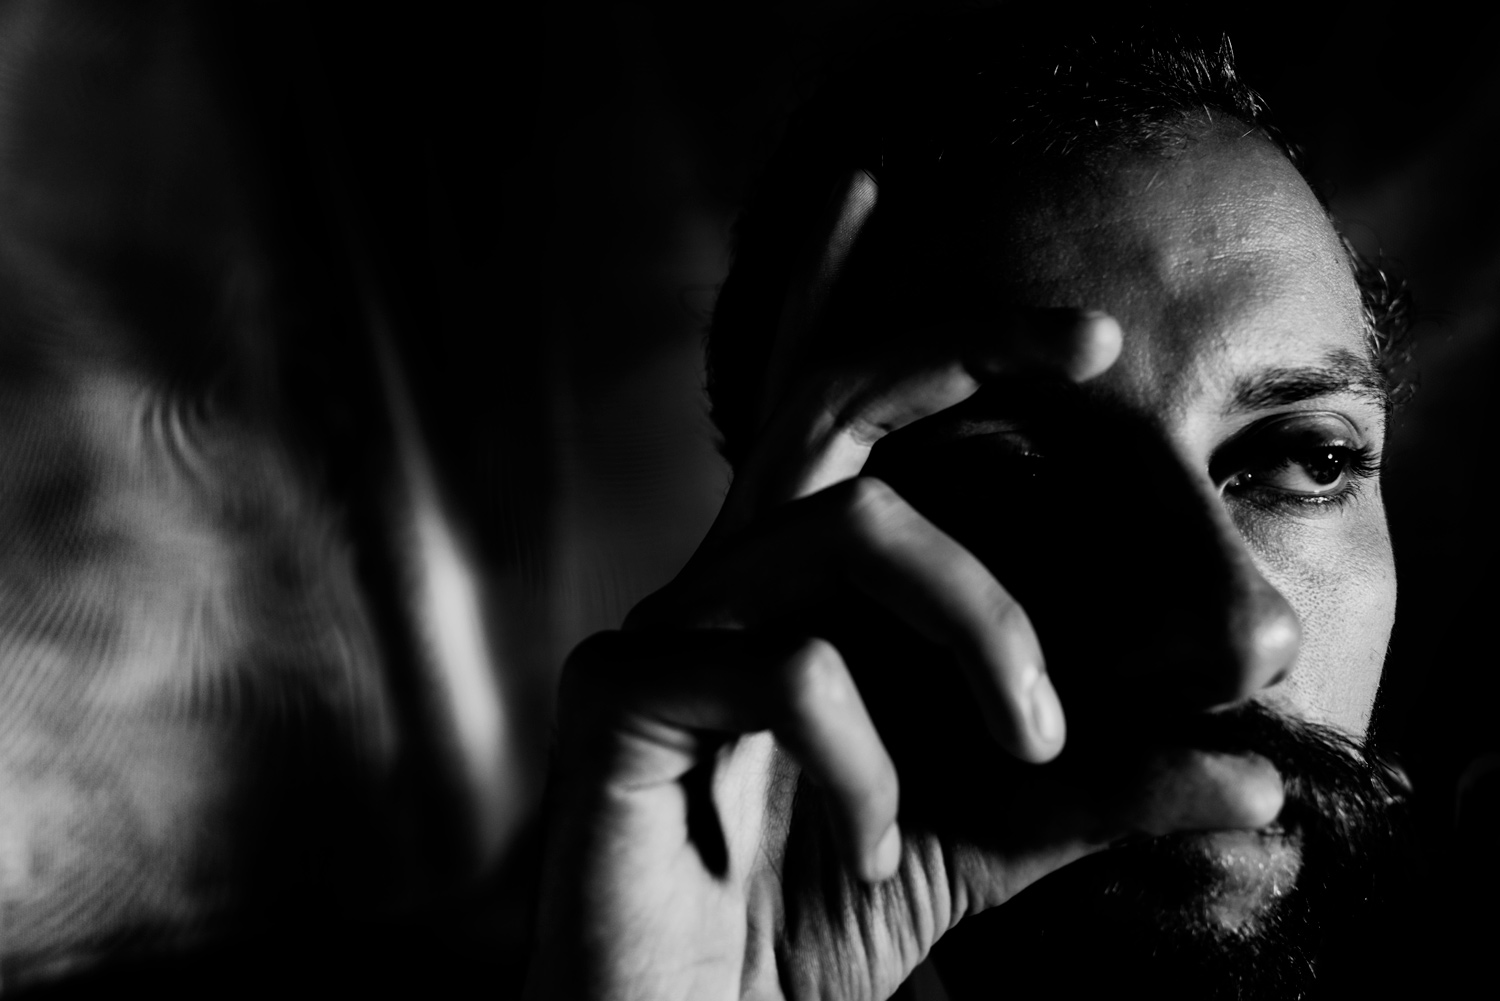 Experimenting with Low Key Black and White Photography Dark Male Portrait